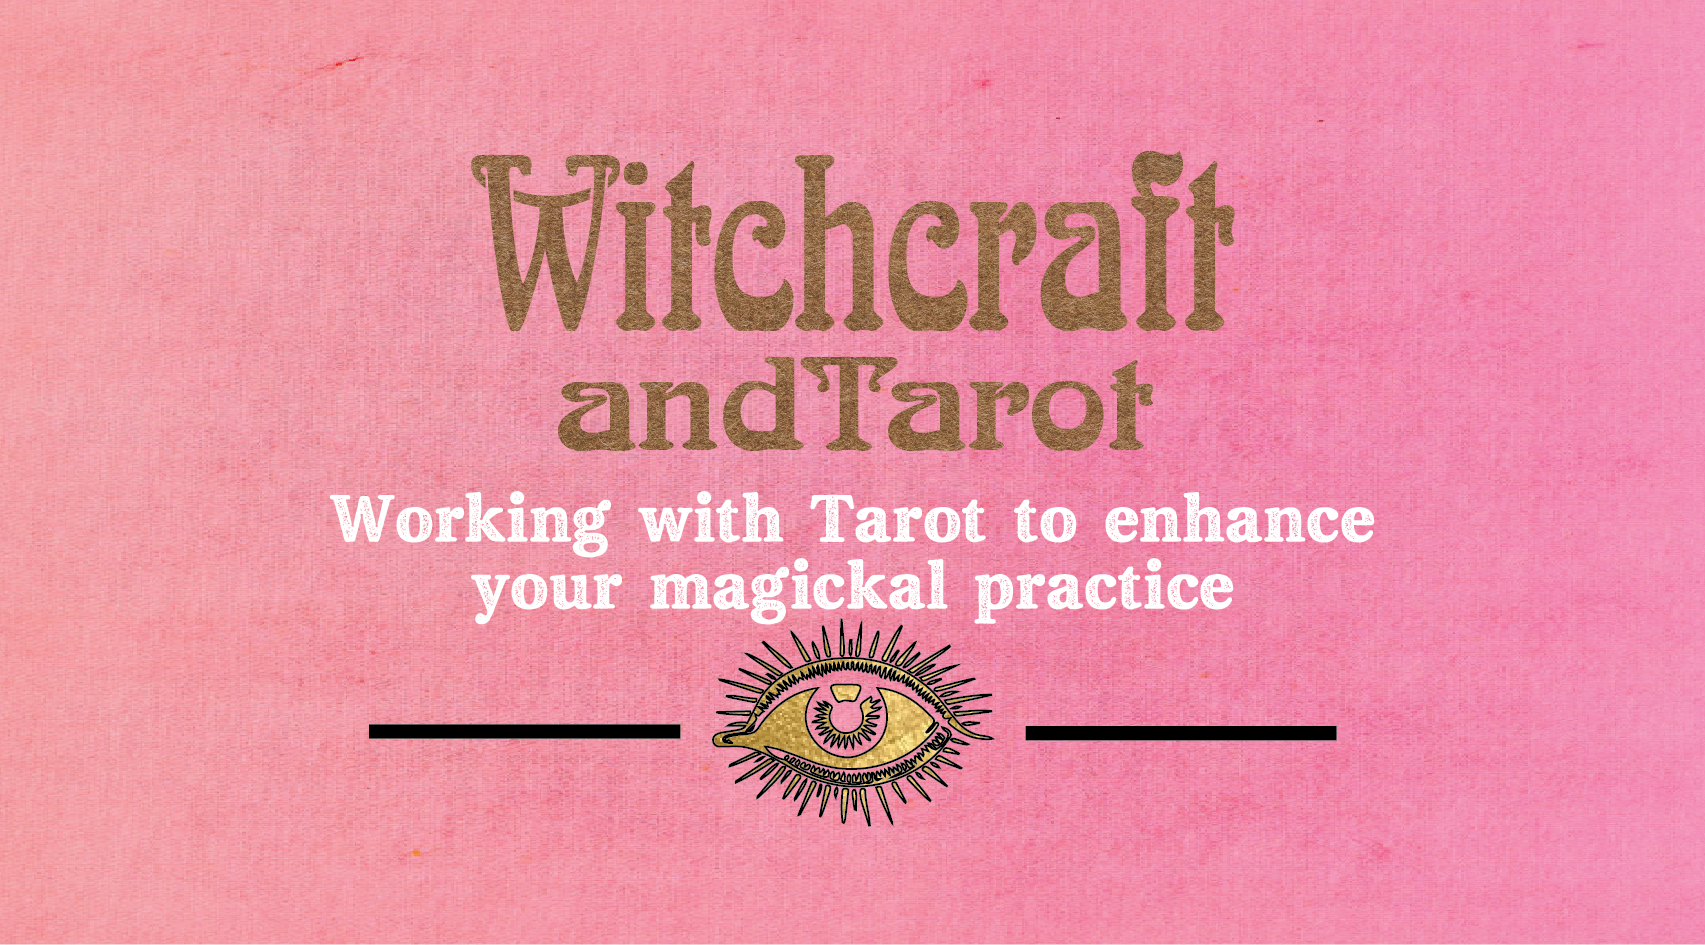 Witchcraft and tarot